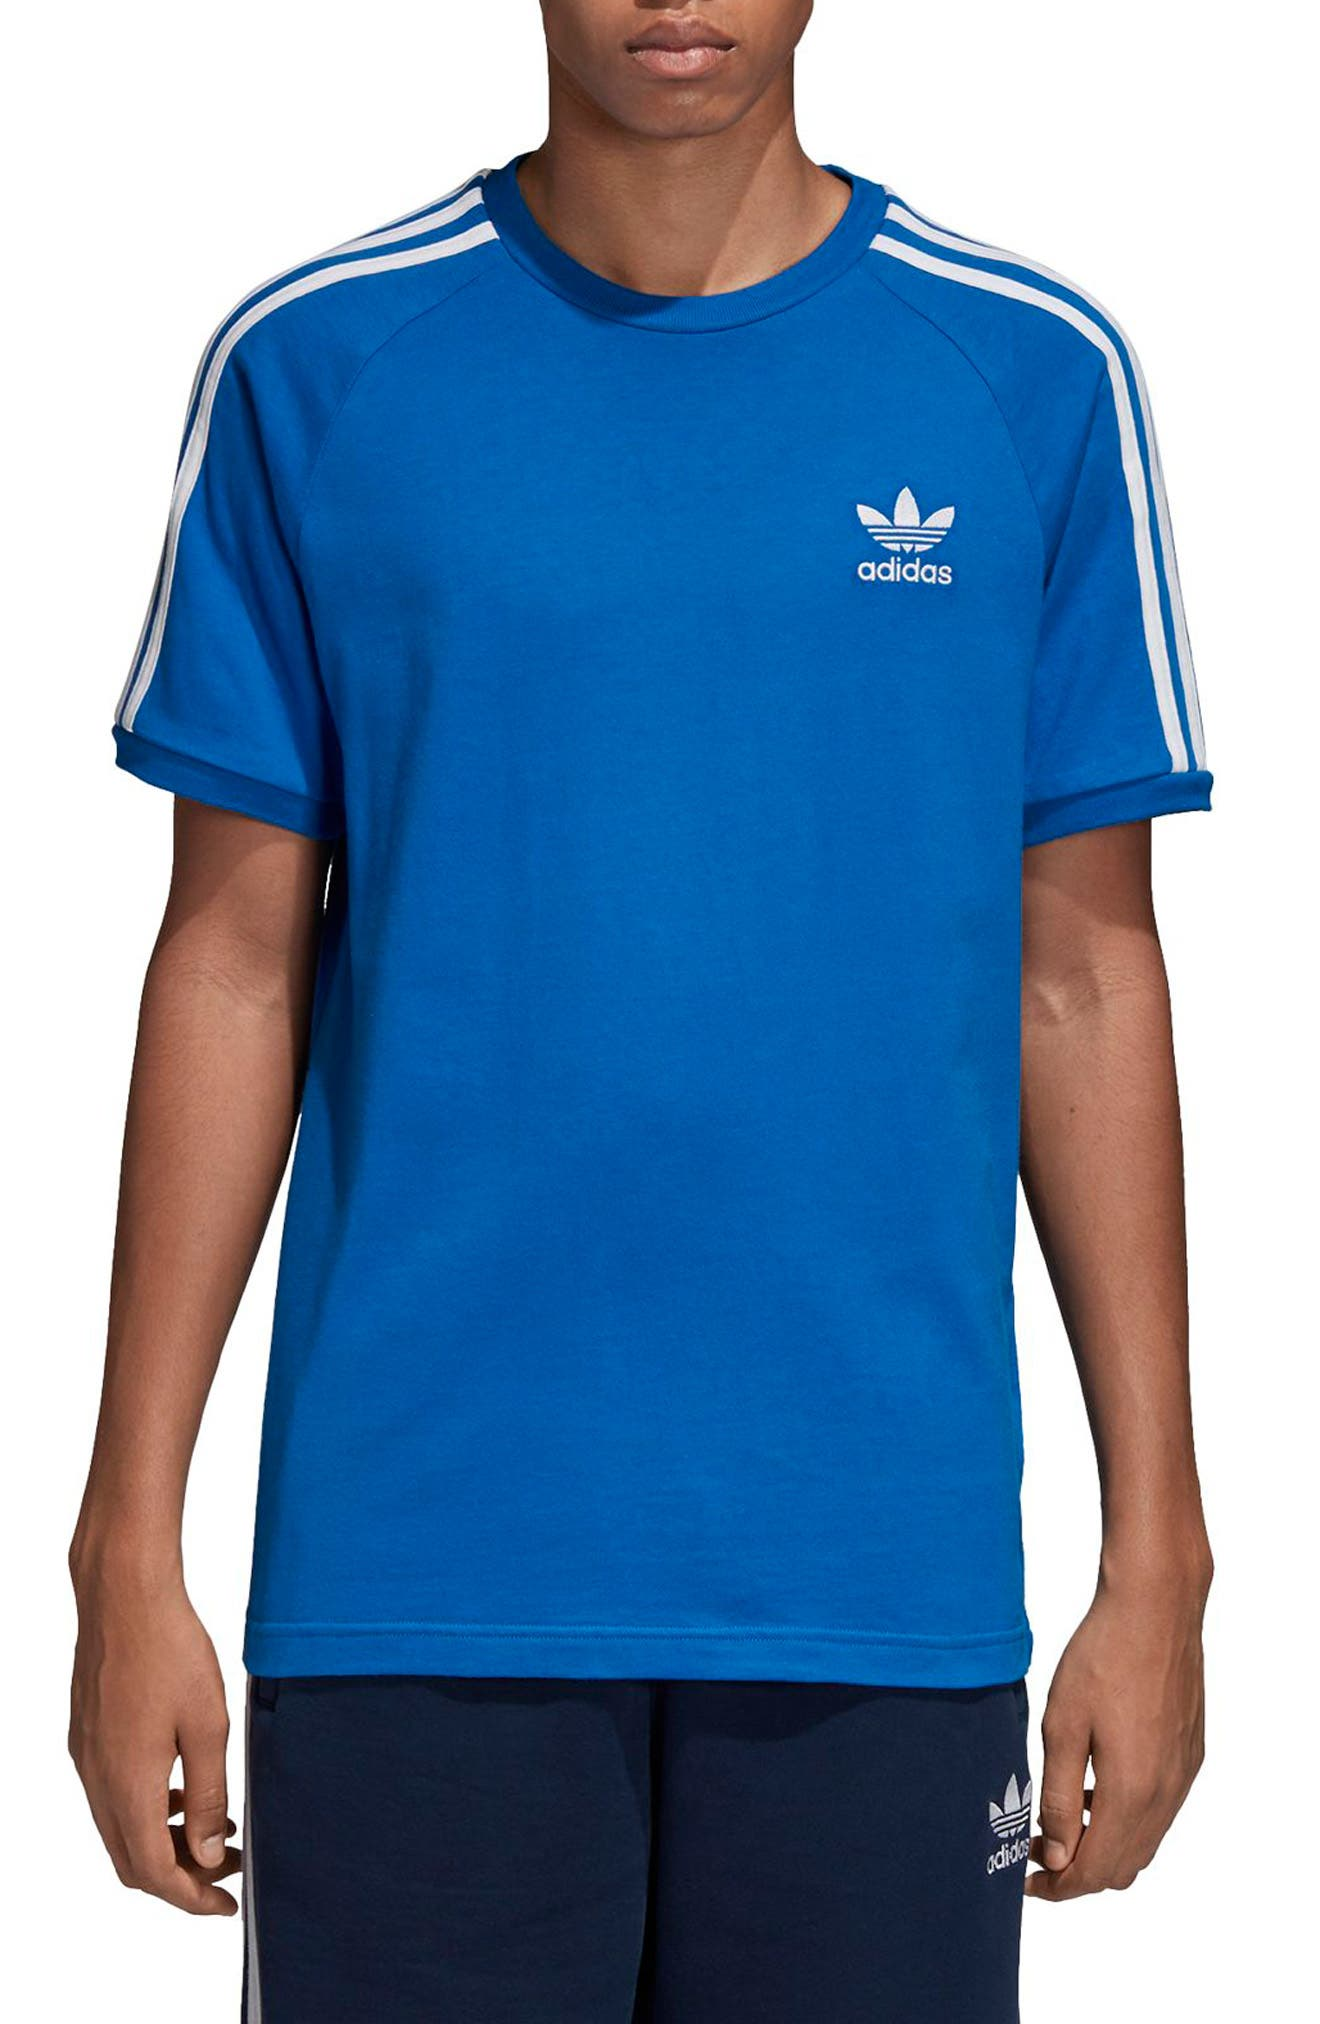 adidas 3-Stripes T-Shirt,                         Main,                         color, BLUEBIRD